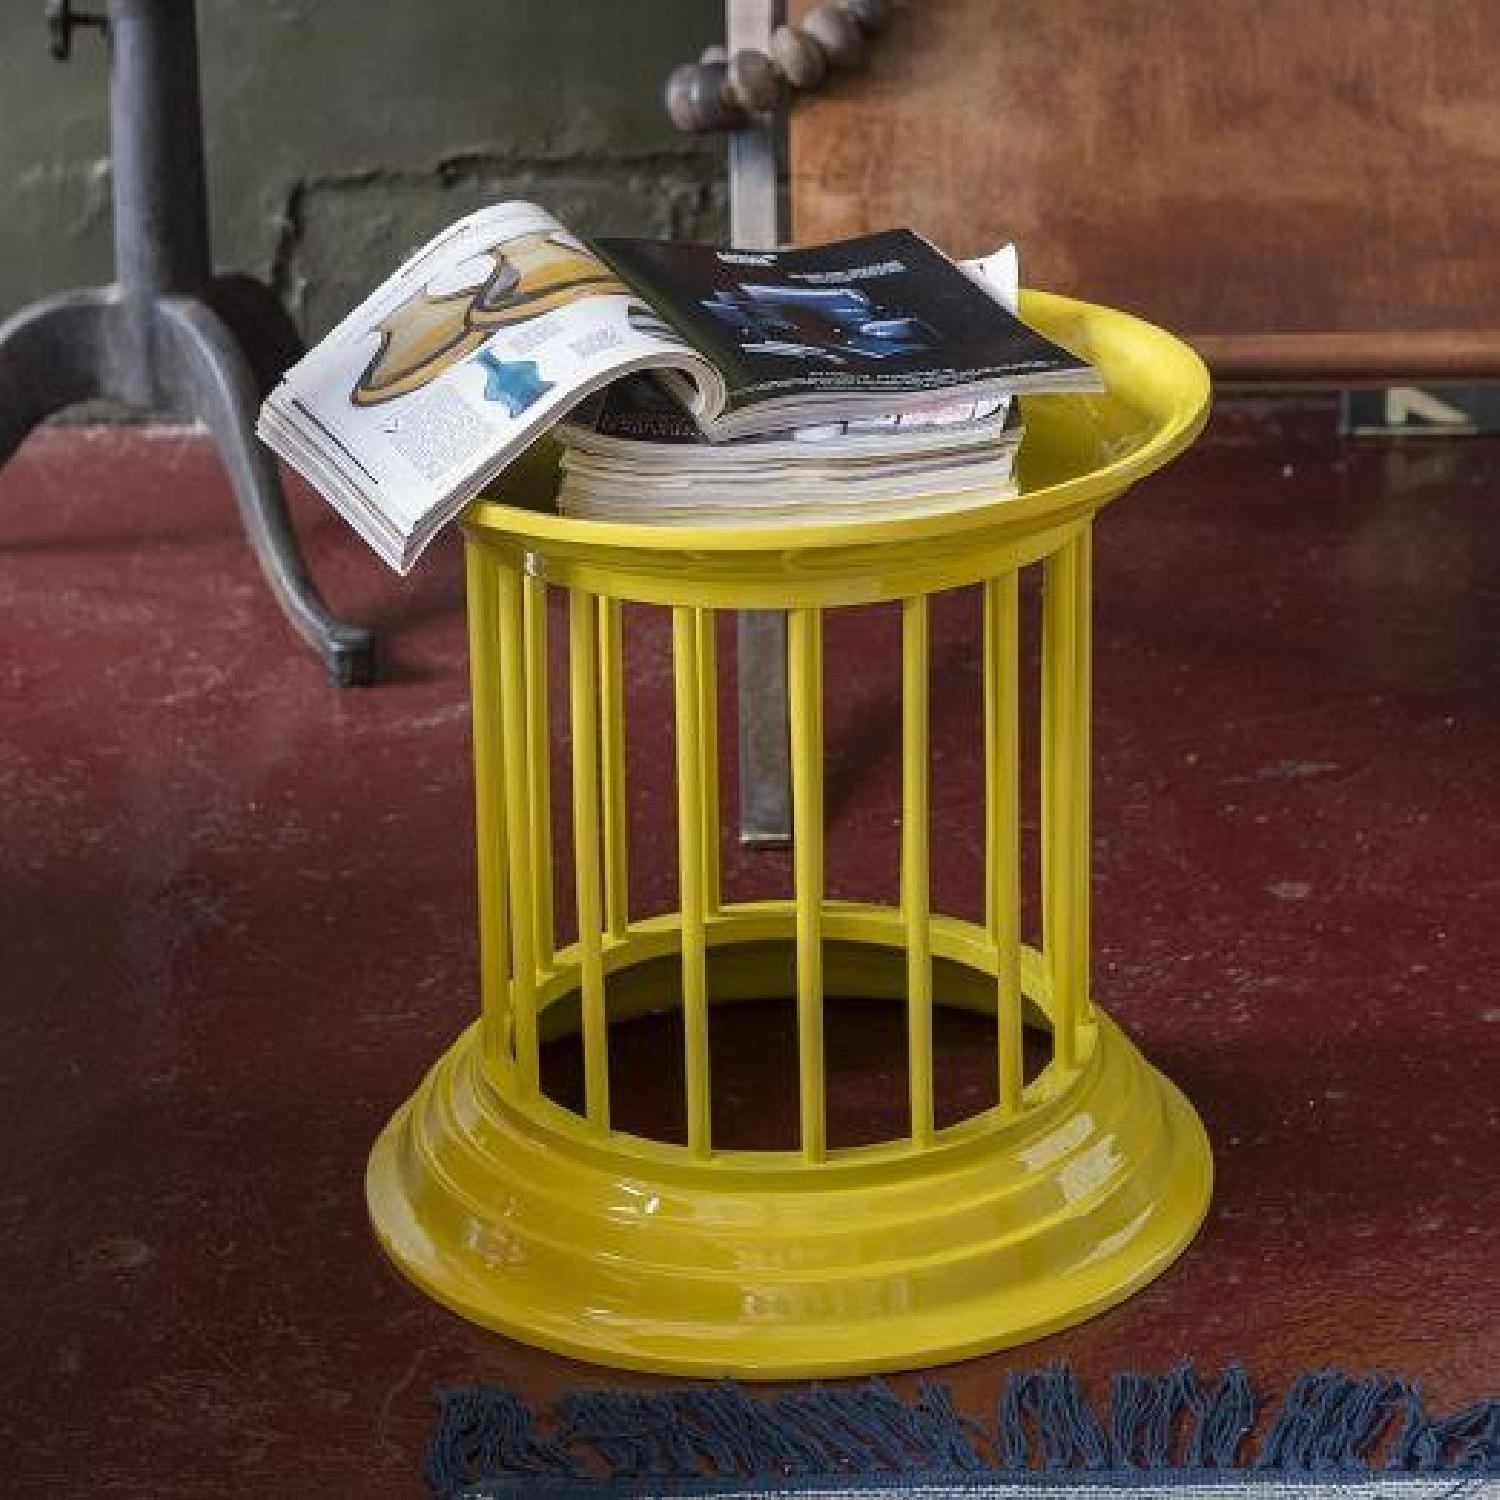 West Elm Gates Gates Lacquer Side Tables in Lemon Yellow-1